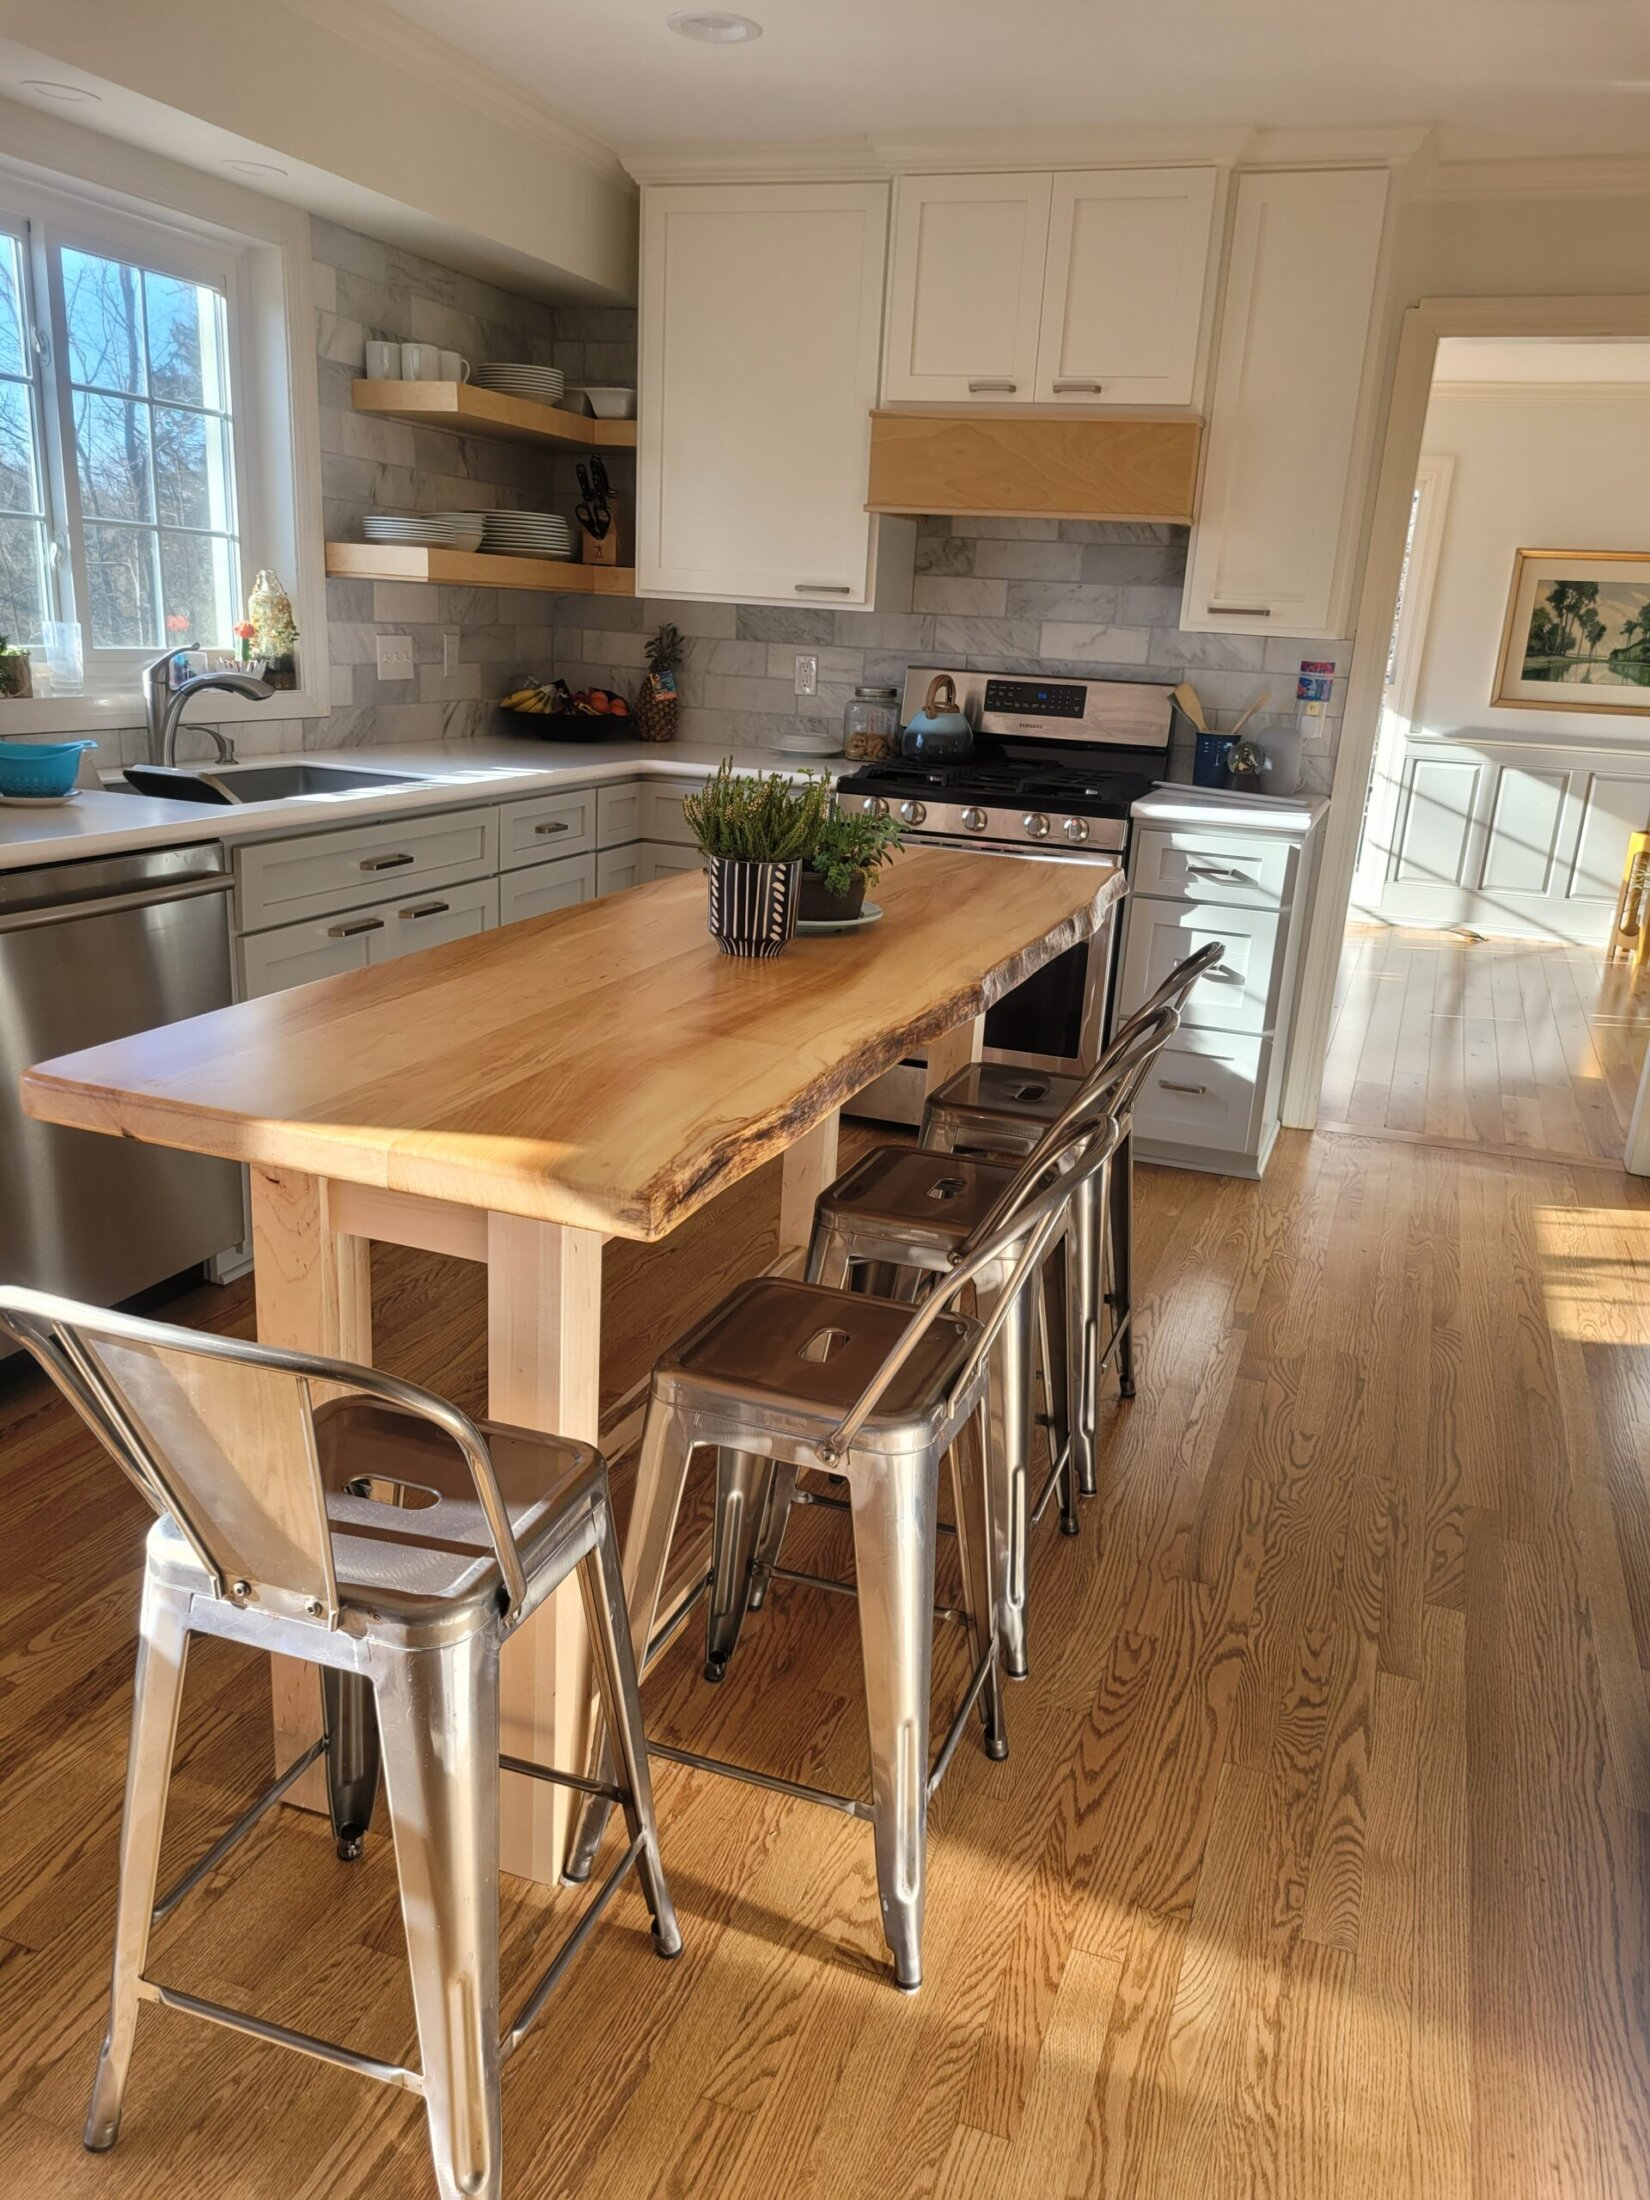 Custom Maple Cabinets and Maple Island with Live Edge Top